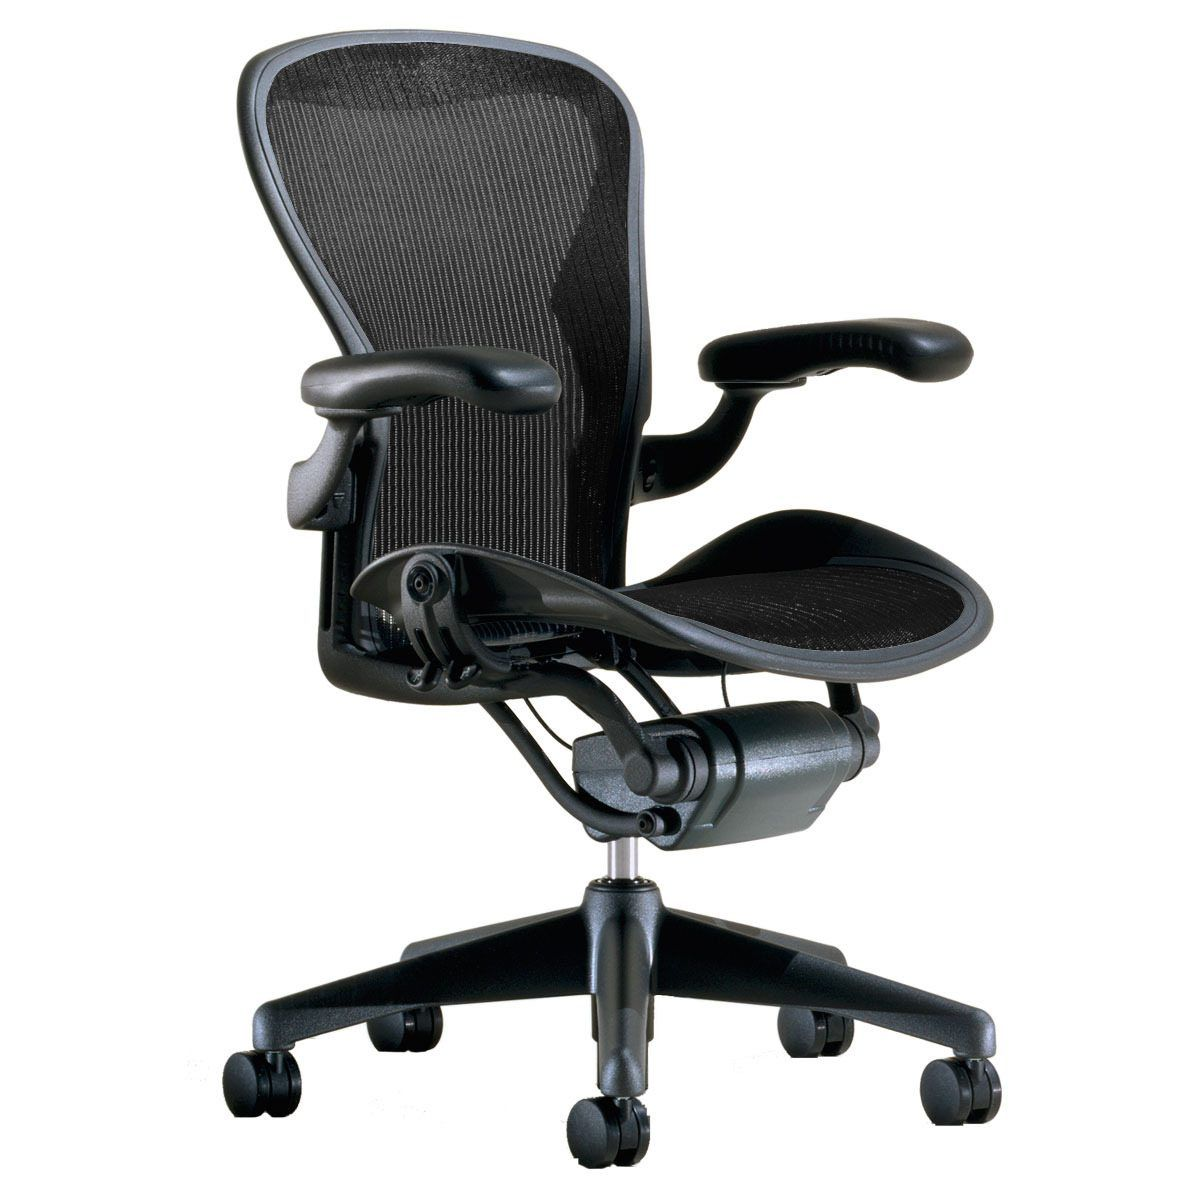 Top 10 Office Desk Chairs Diy Stand Up Desk Check more at http